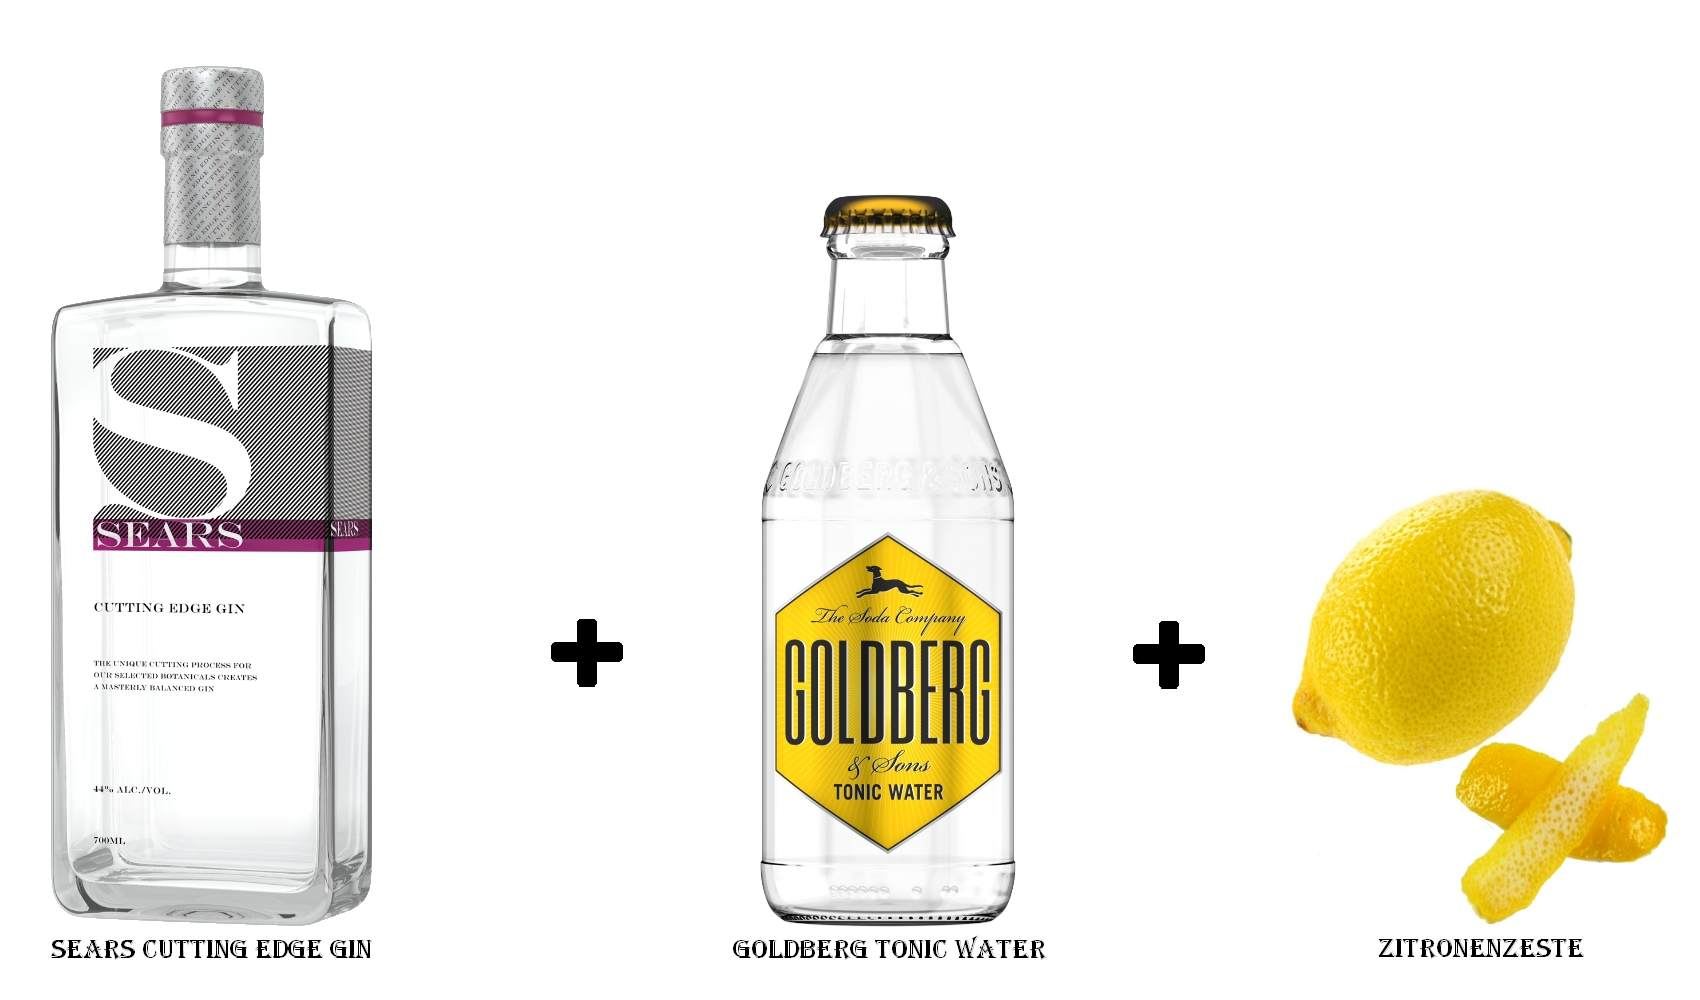 SEARS CUTTING EDGE GIN + Goldberg Tonic Water + Zitronenzeste